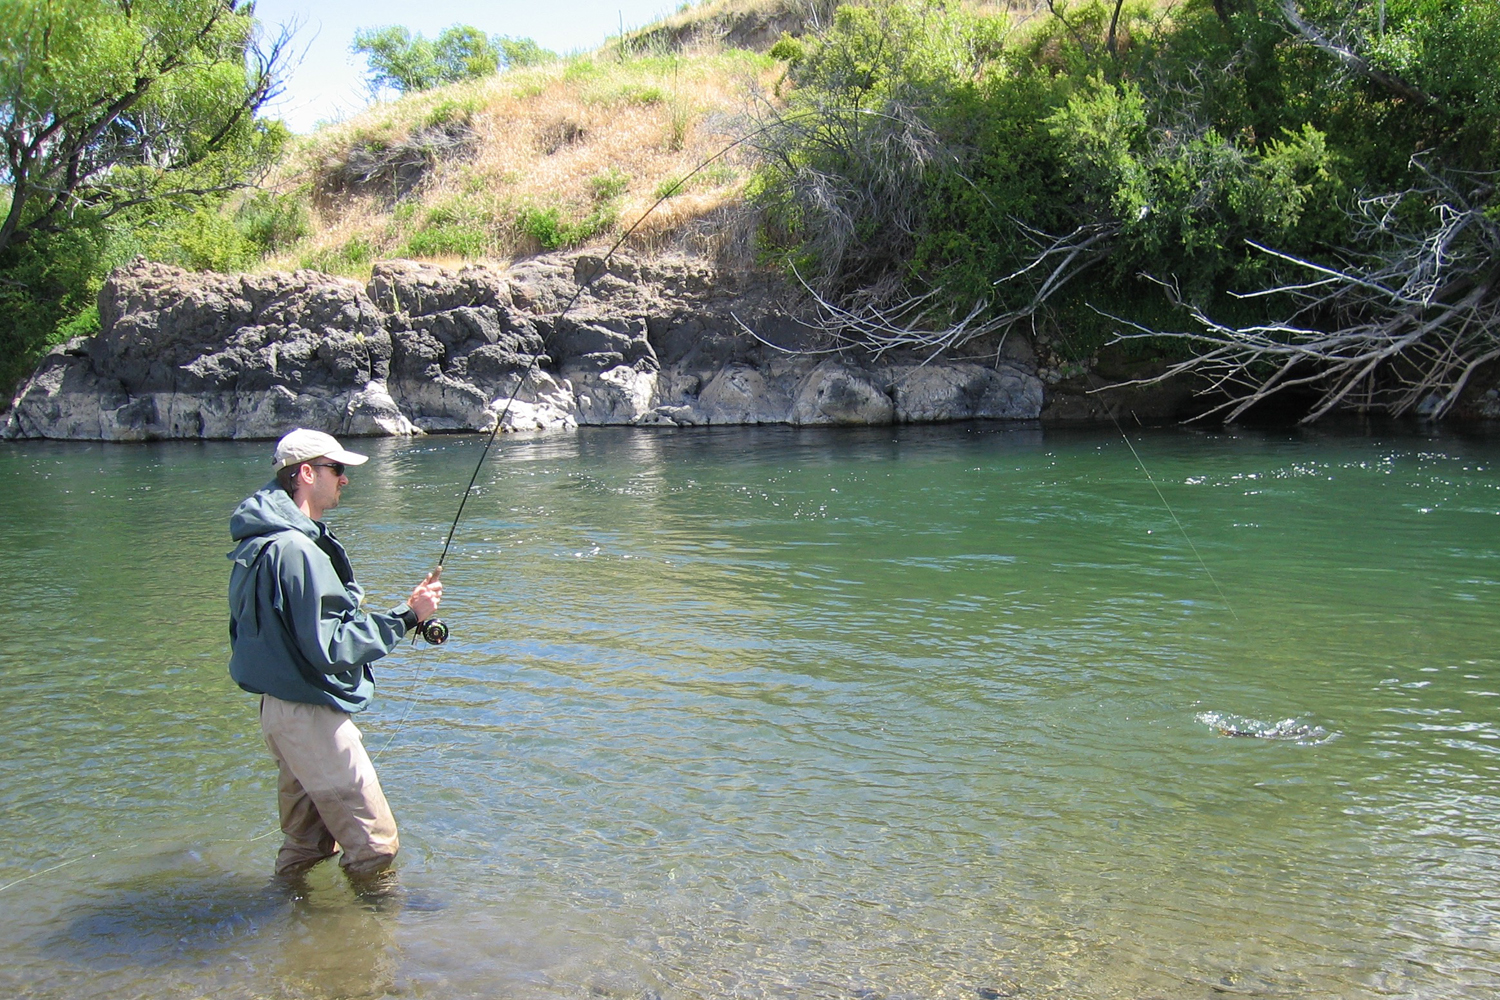 Fighting trout on the Rio Collon Curra